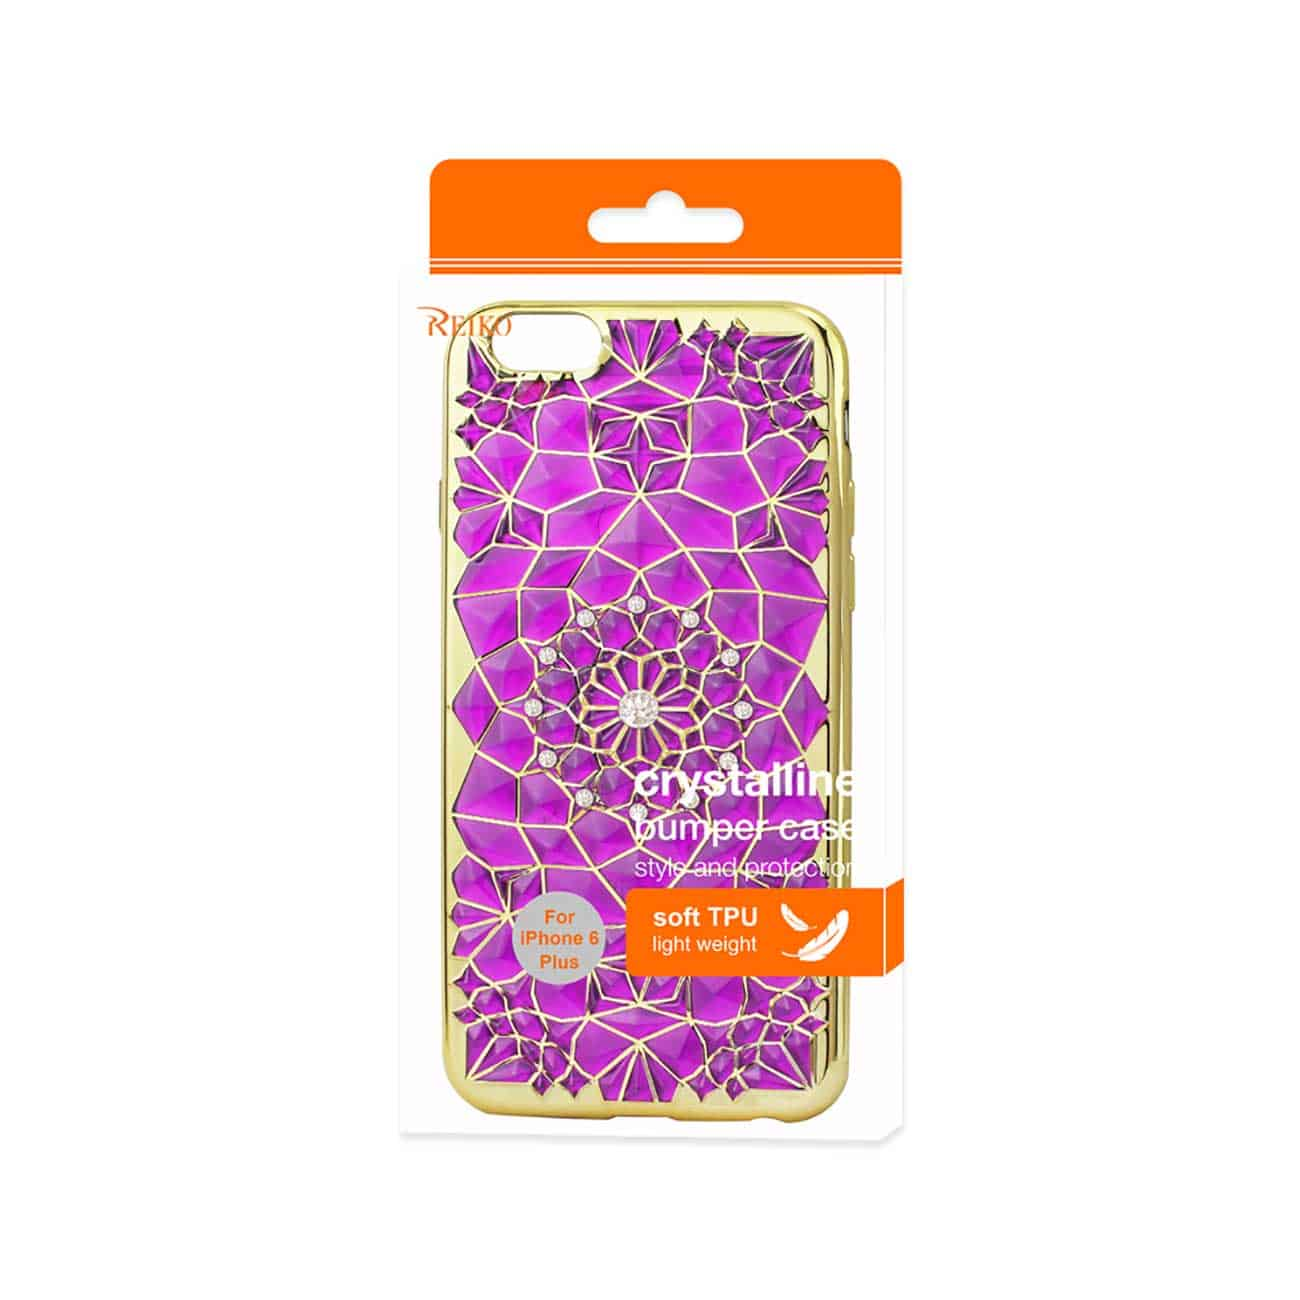 IPHONE 6 PLUS/ 6S PLUS SOFT TPU CASE WITH SPARKLING DIAMOND SUNFLOWER DESIGN IN PURPLE